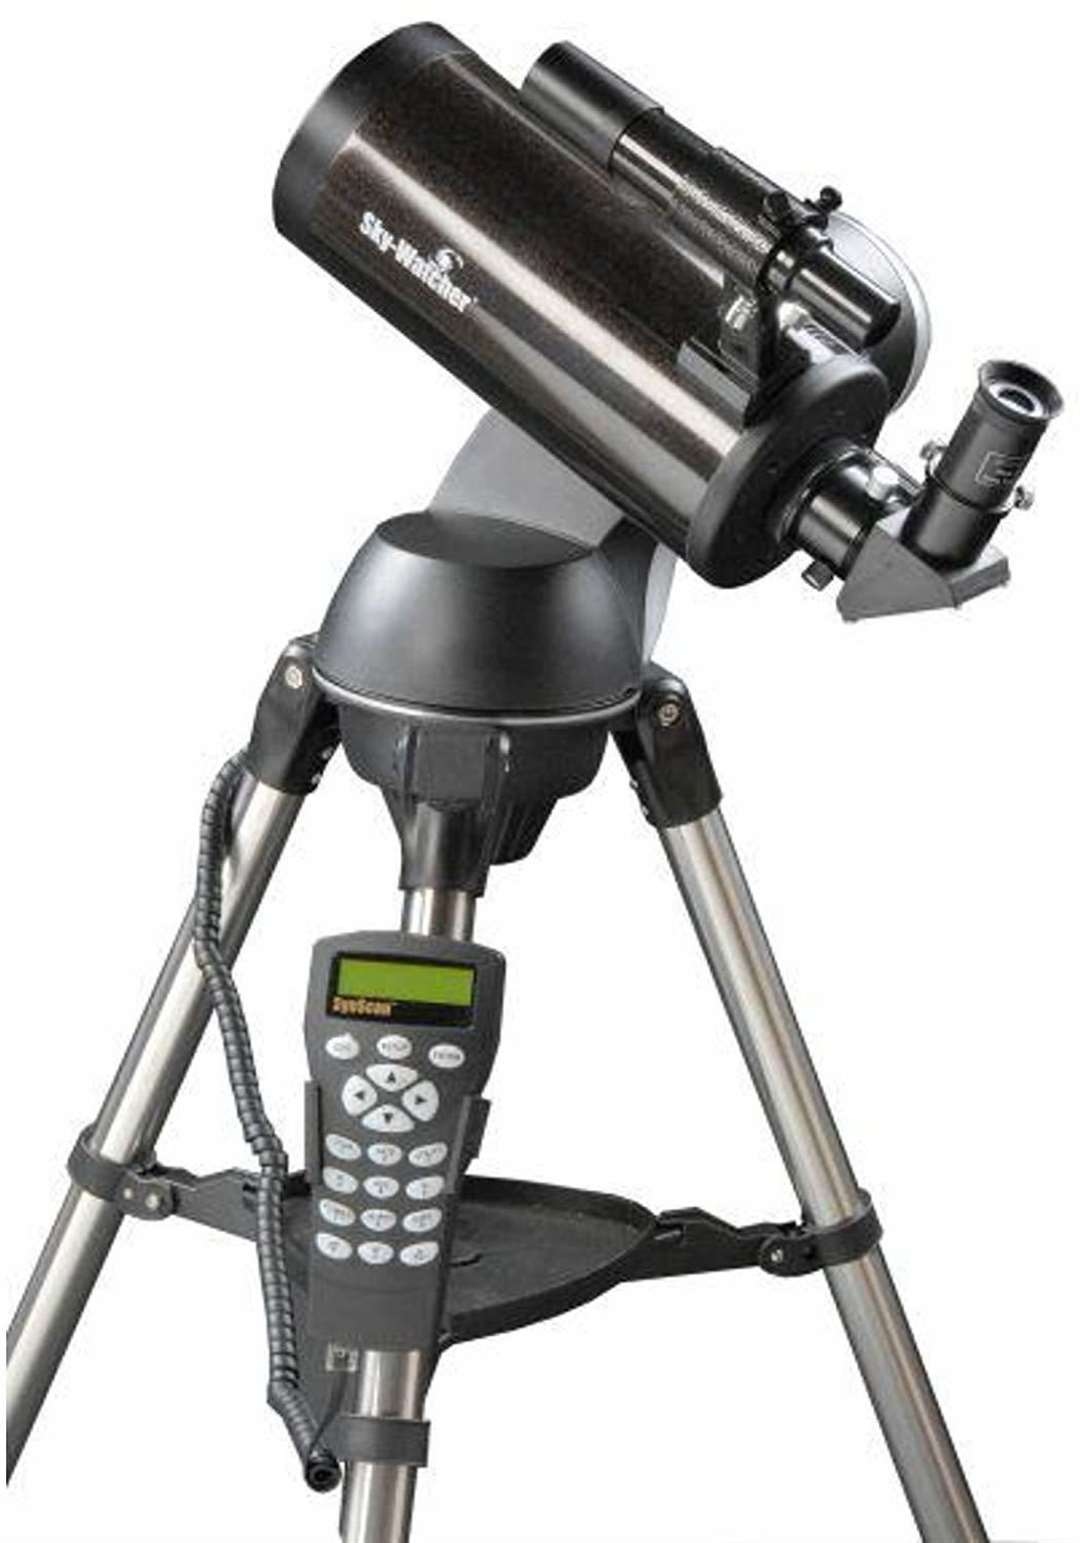 A Sky-Watcher catadioptric telescope with a computerised alz-az GoTo mount